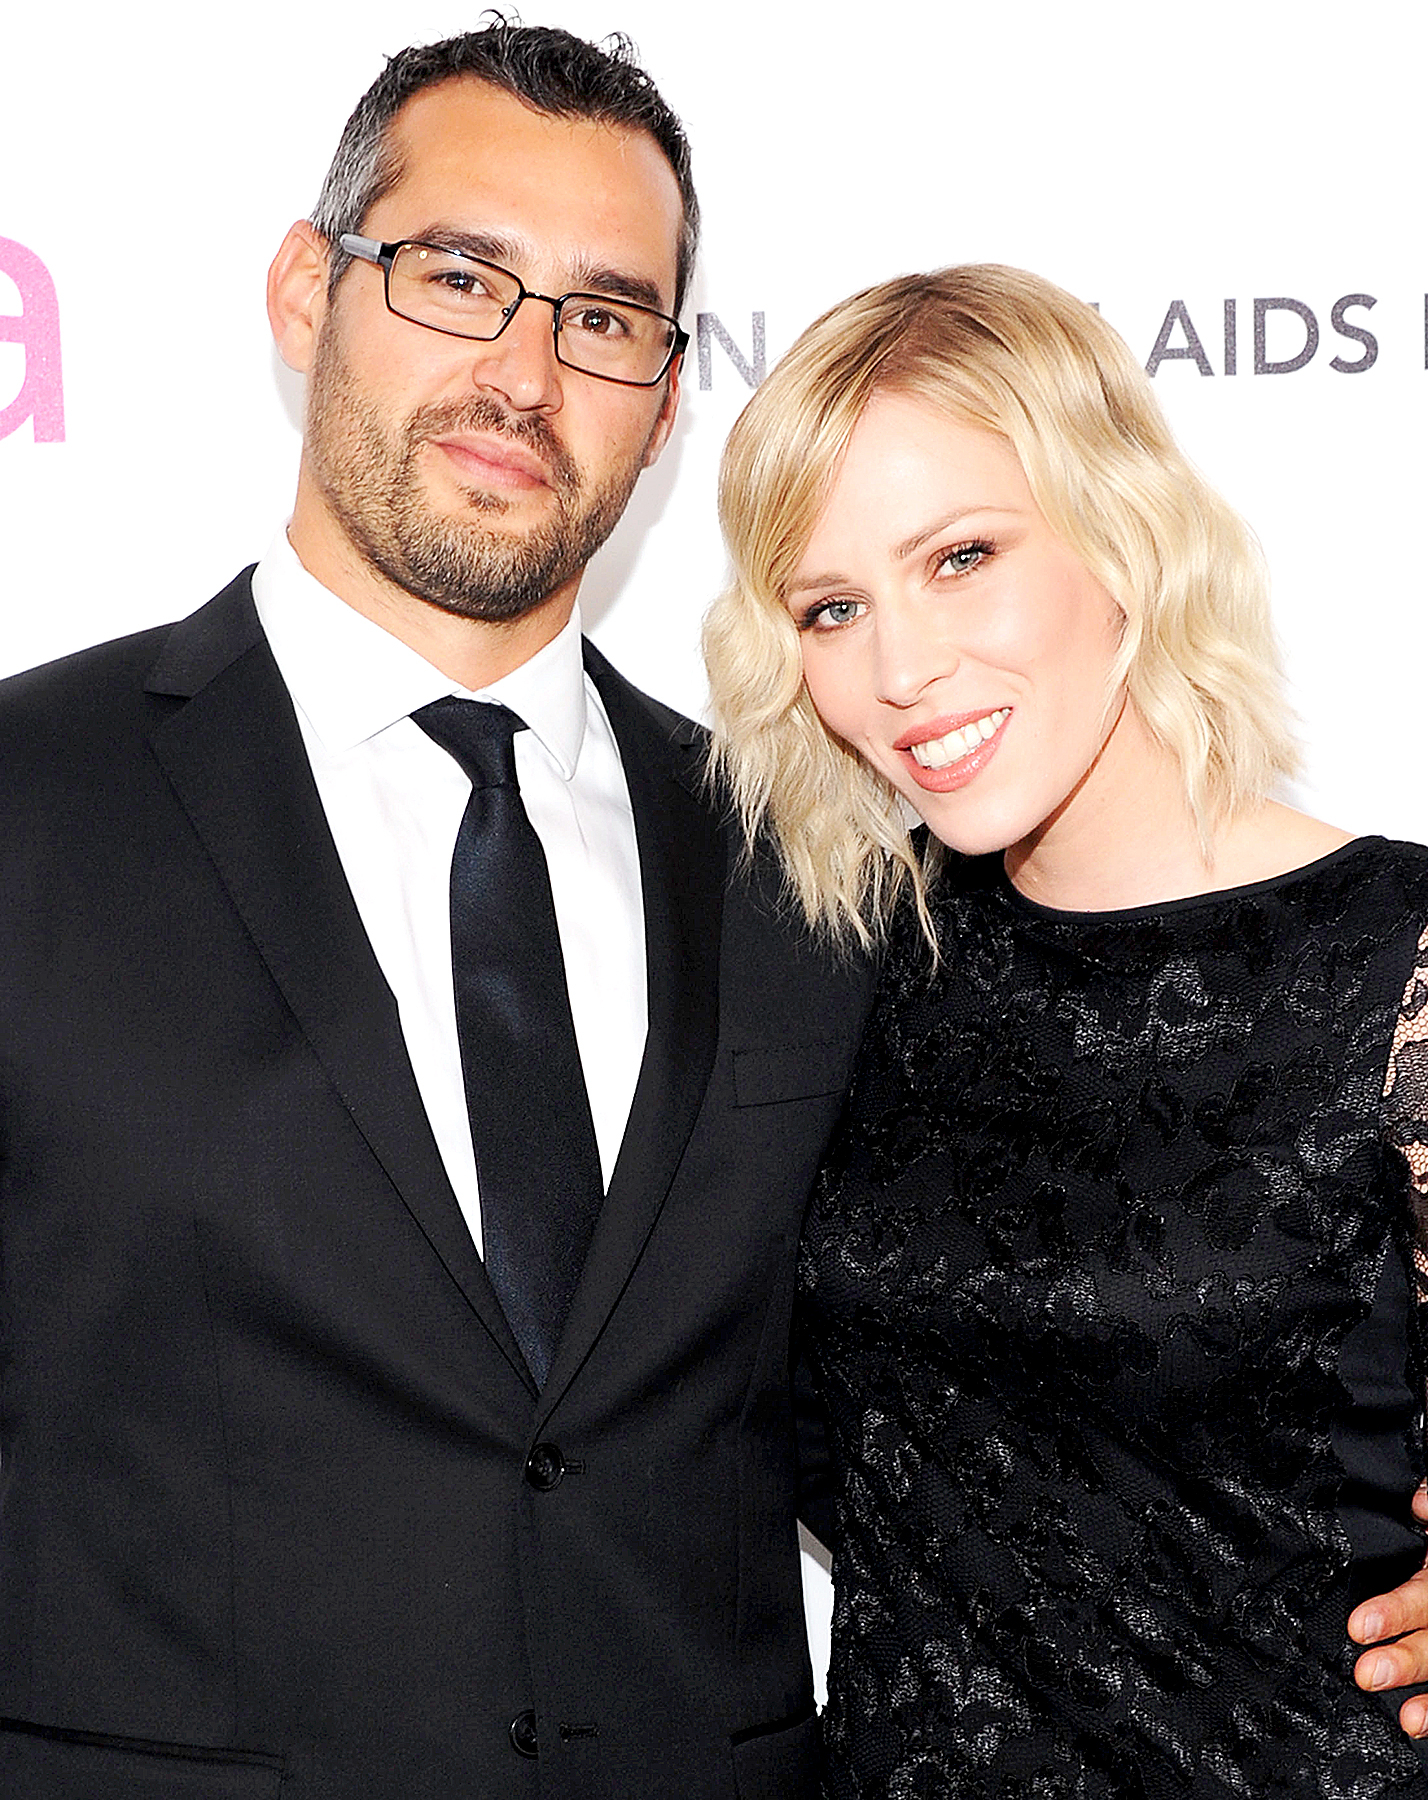 Matt Robinson and Natasha Bedingfield arrive at the 20th Annual Elton John AIDS Foundation Academy Awards Viewing Party at The City of West Hollywood Park on February 26, 2012 in Beverly Hills, California.